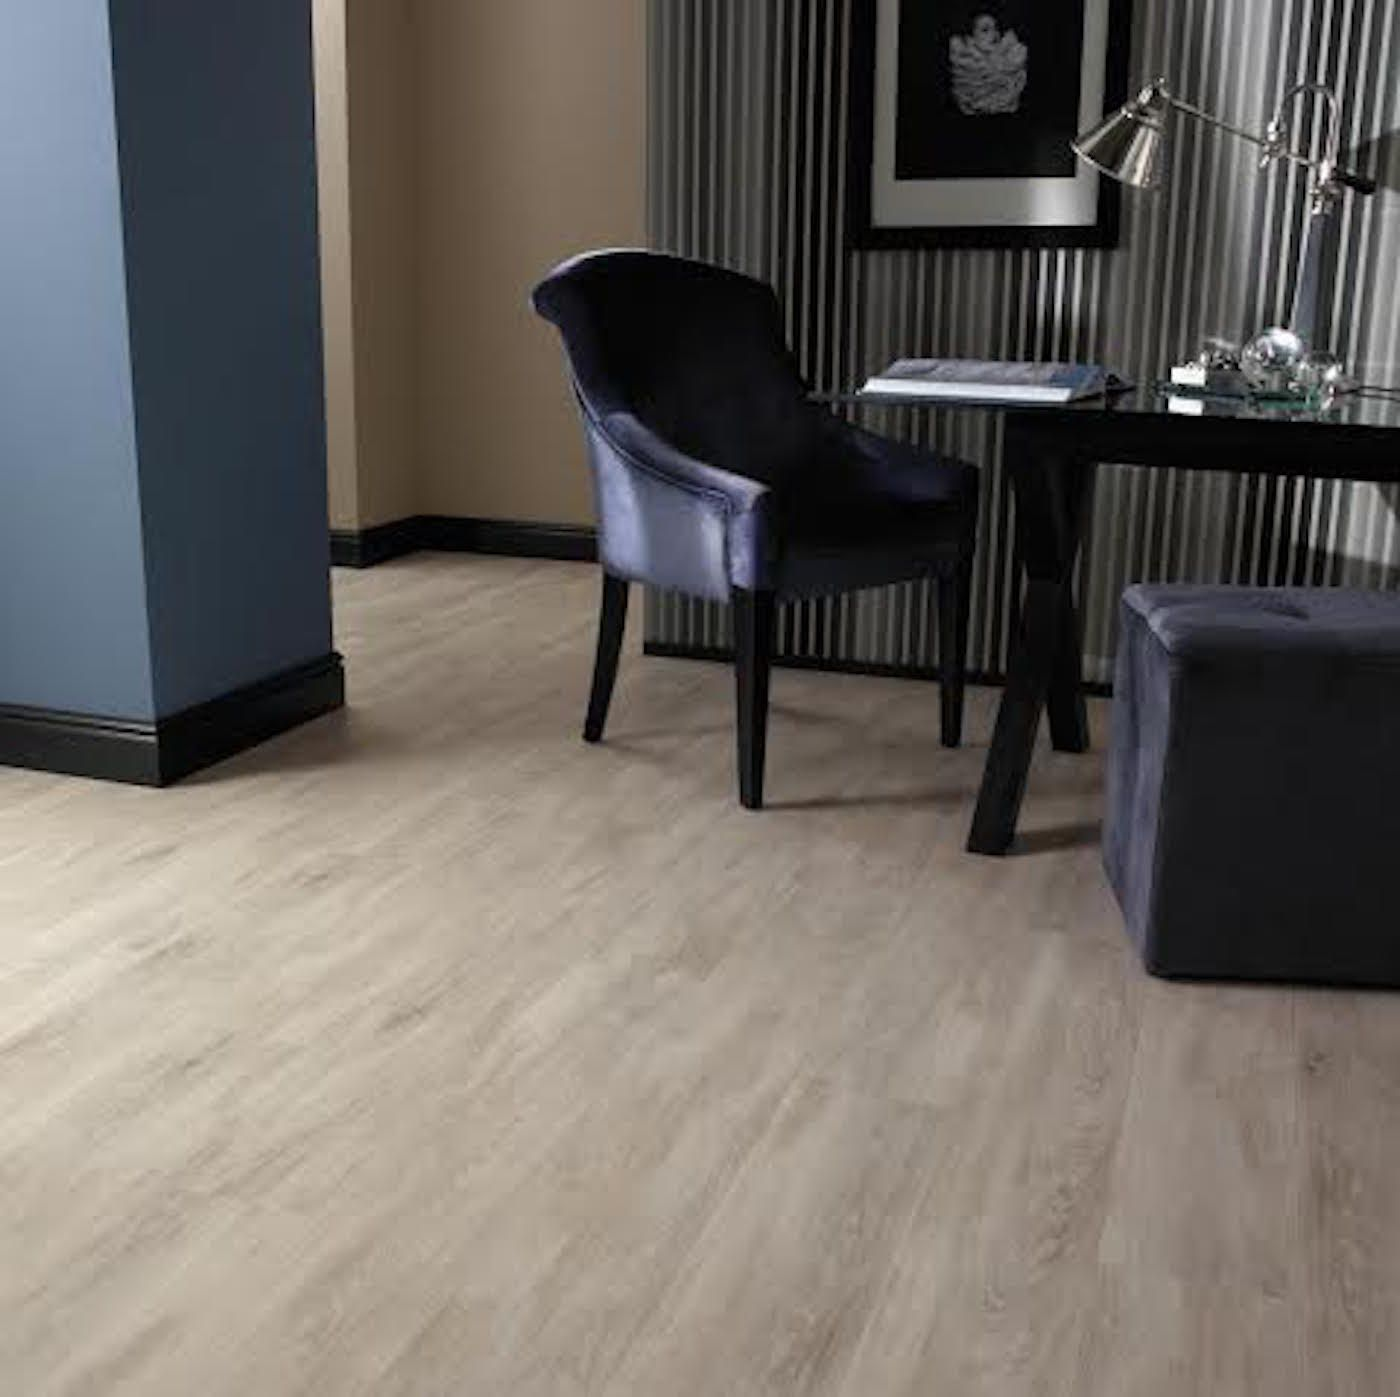 Soft Flooring For Kitchen Mannington Floors Wood Flooring Ideas Pinterest Floors